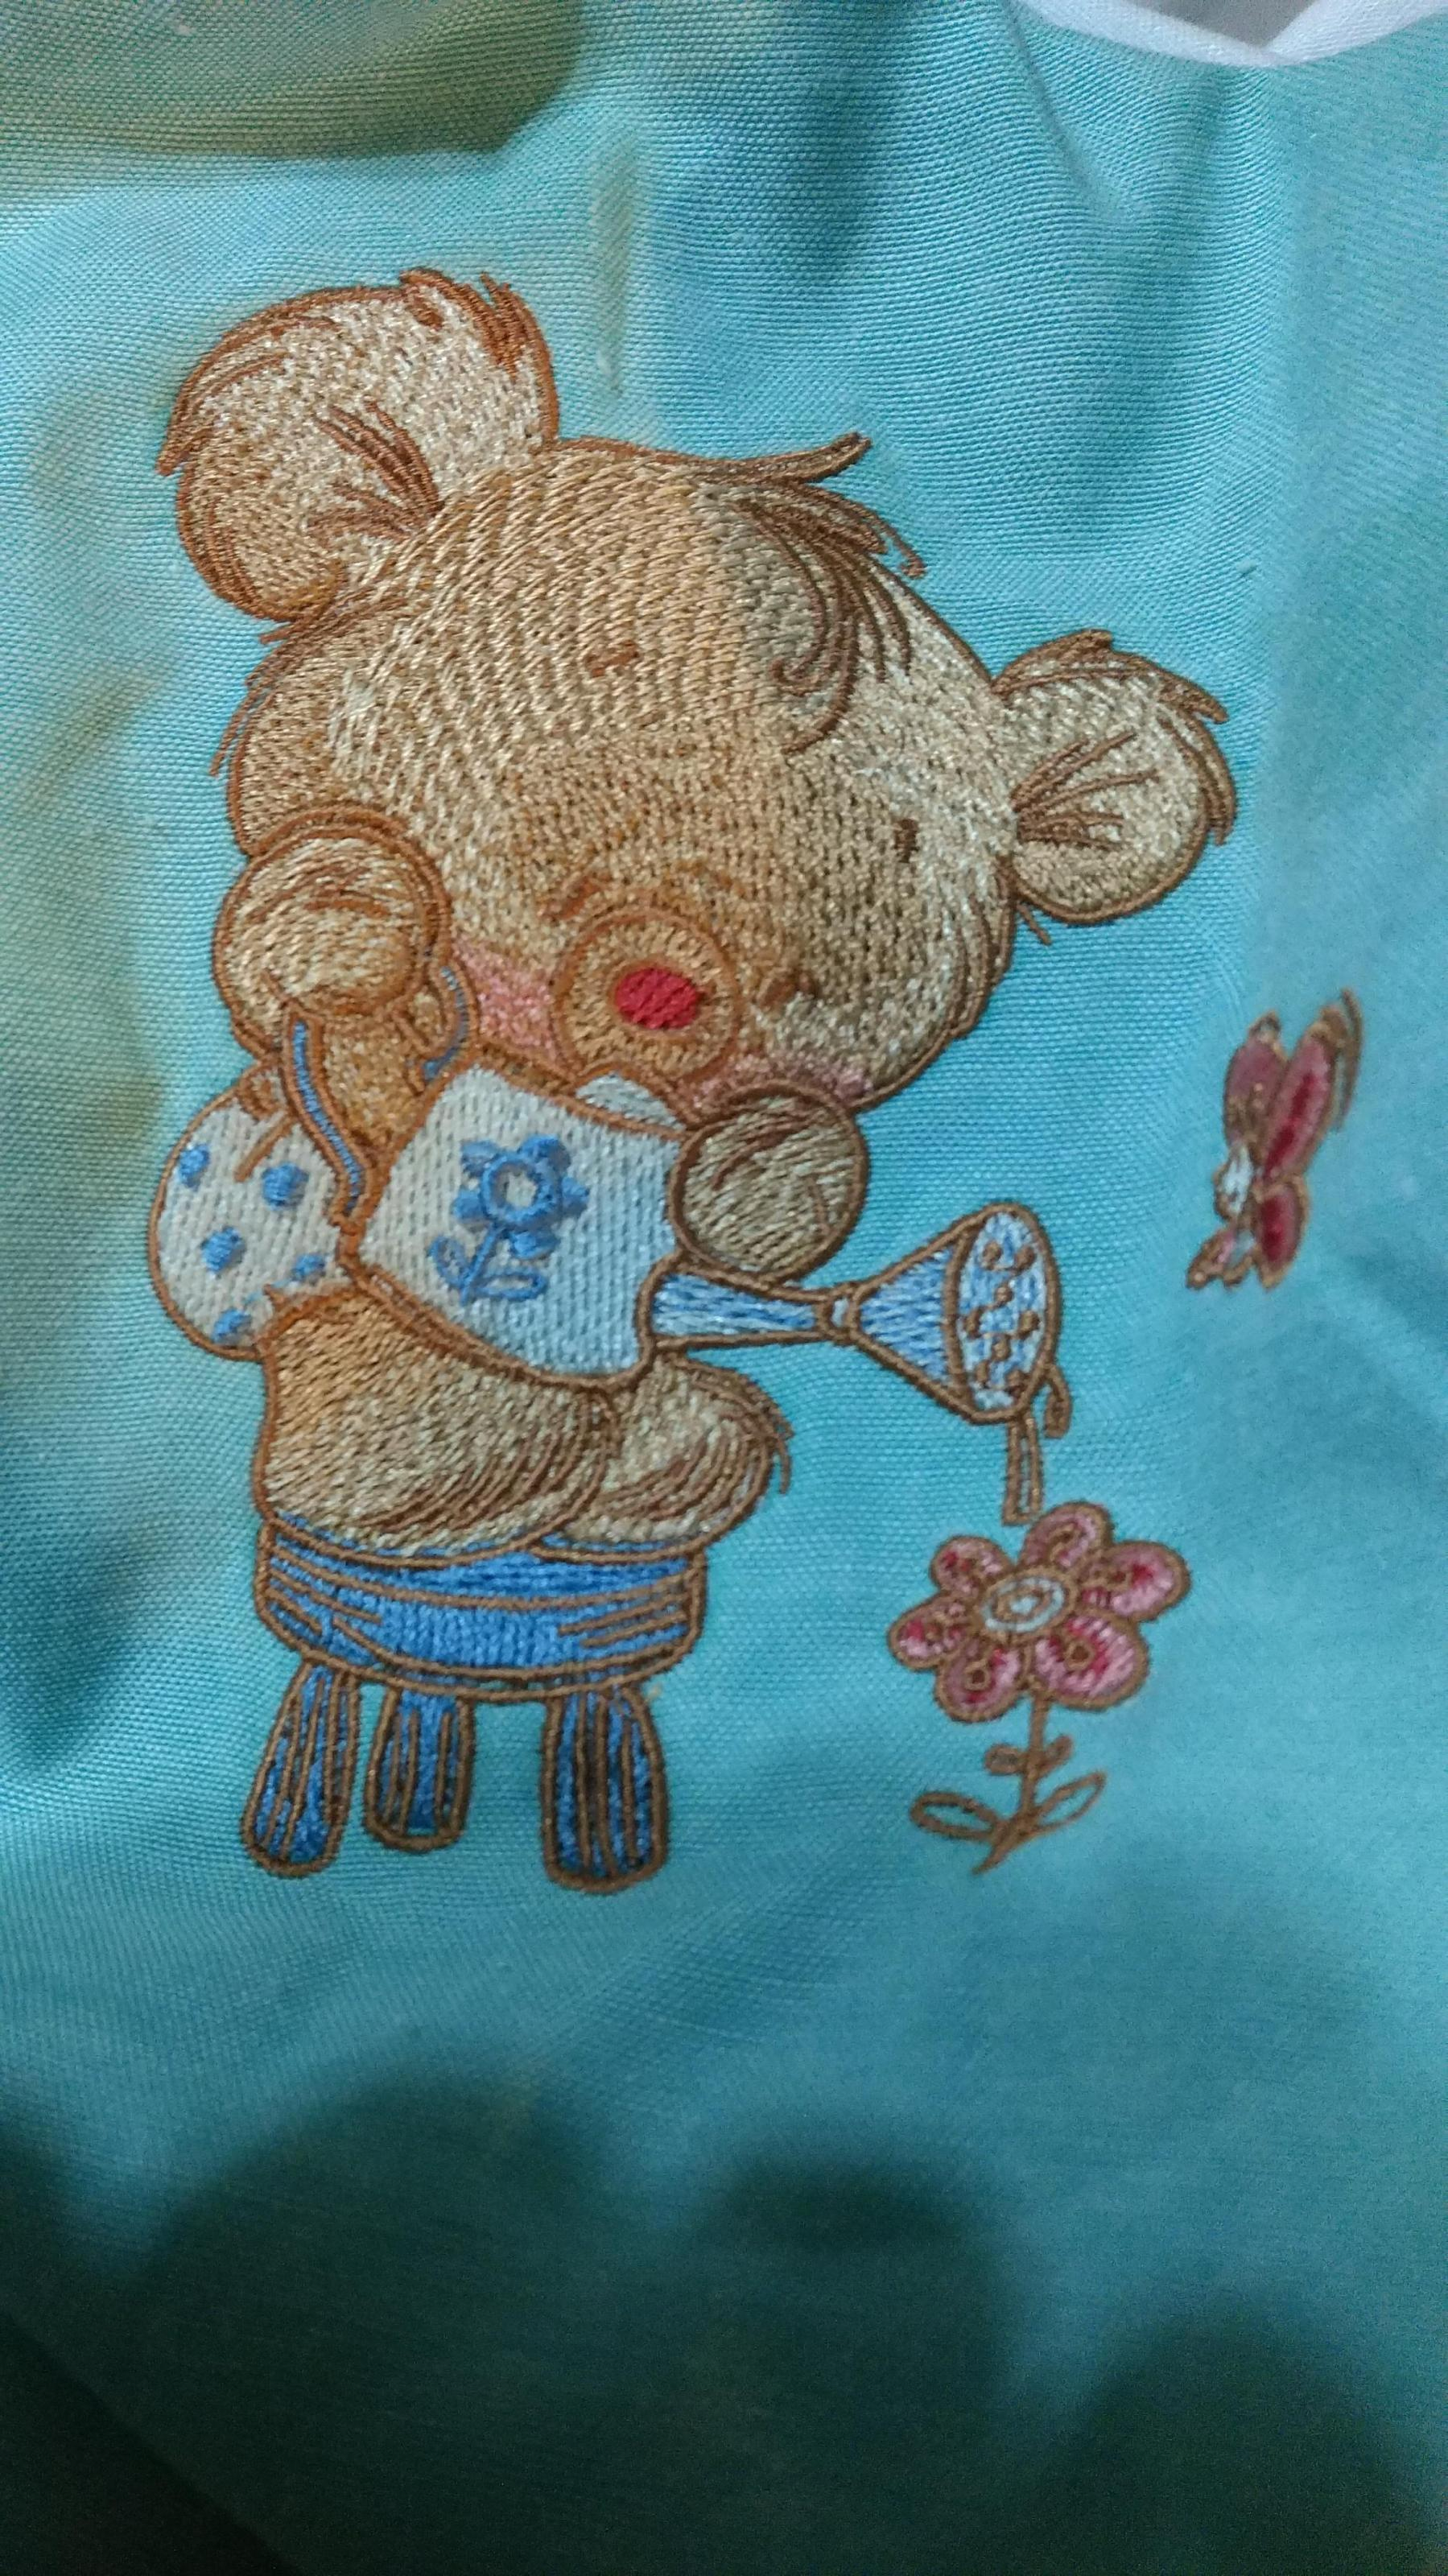 Finished Teddy bear watering can embroidery design